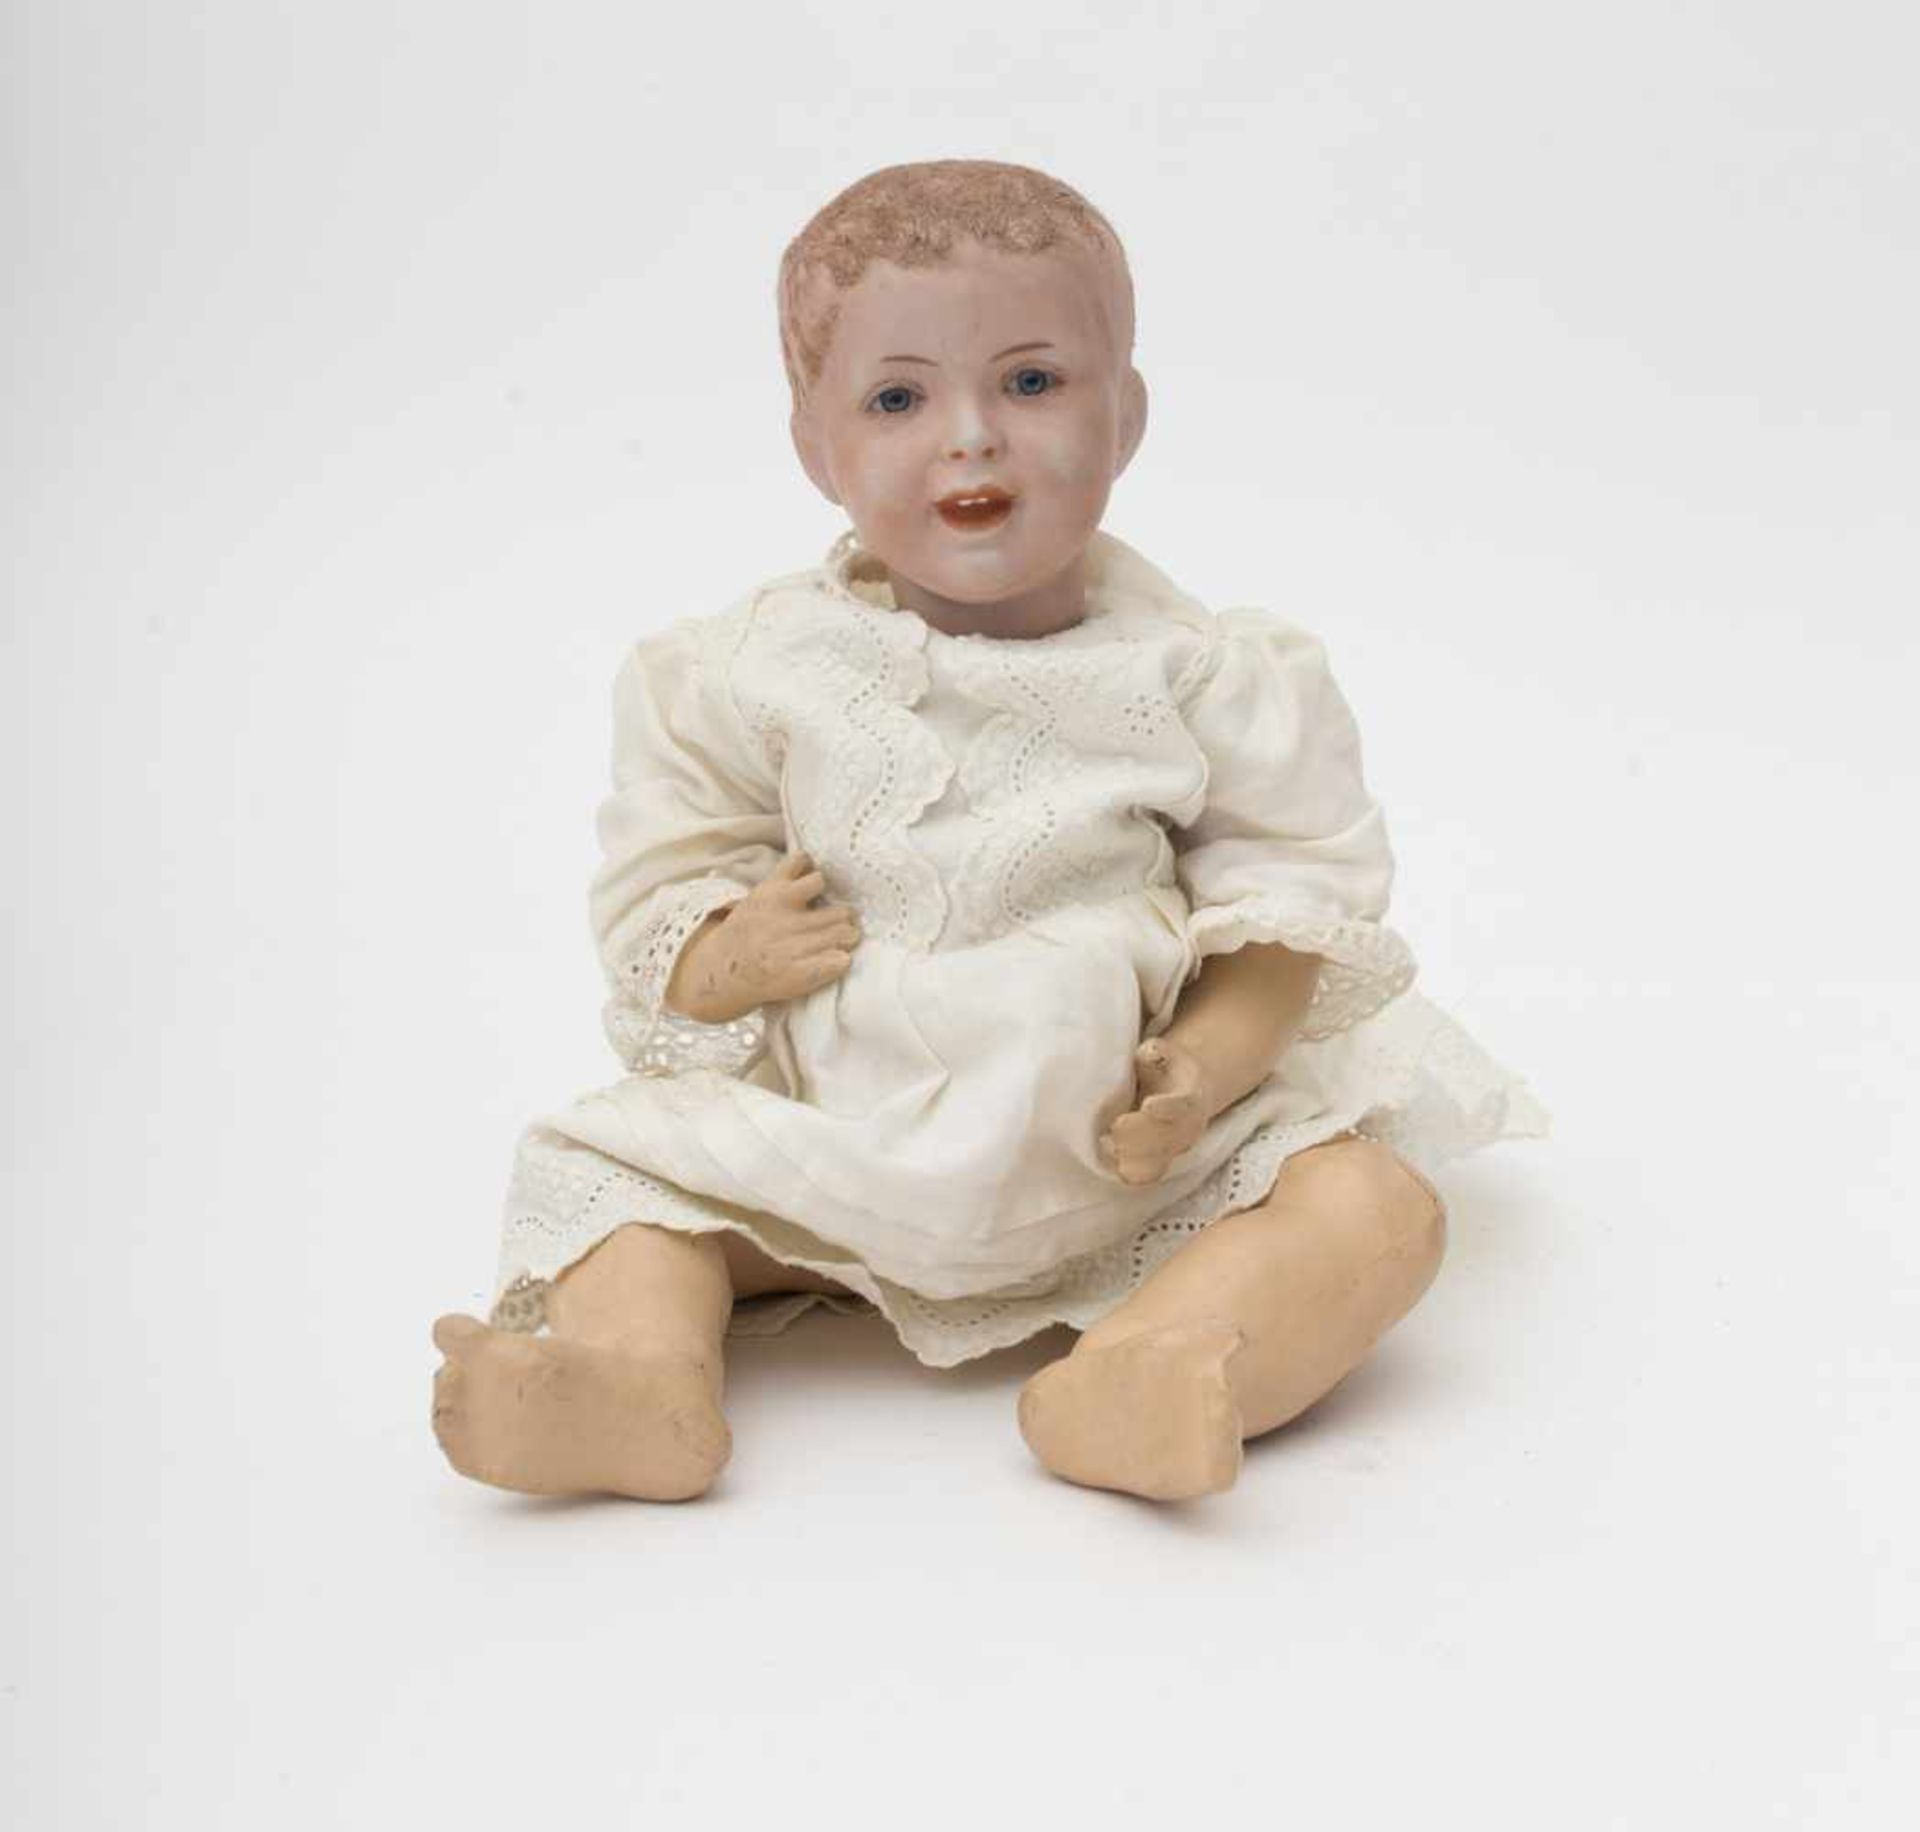 """Character baby doll Fixed blue eyes, branded """"SFBJ 235 PARIS"""", size 4, full head with flocked"""